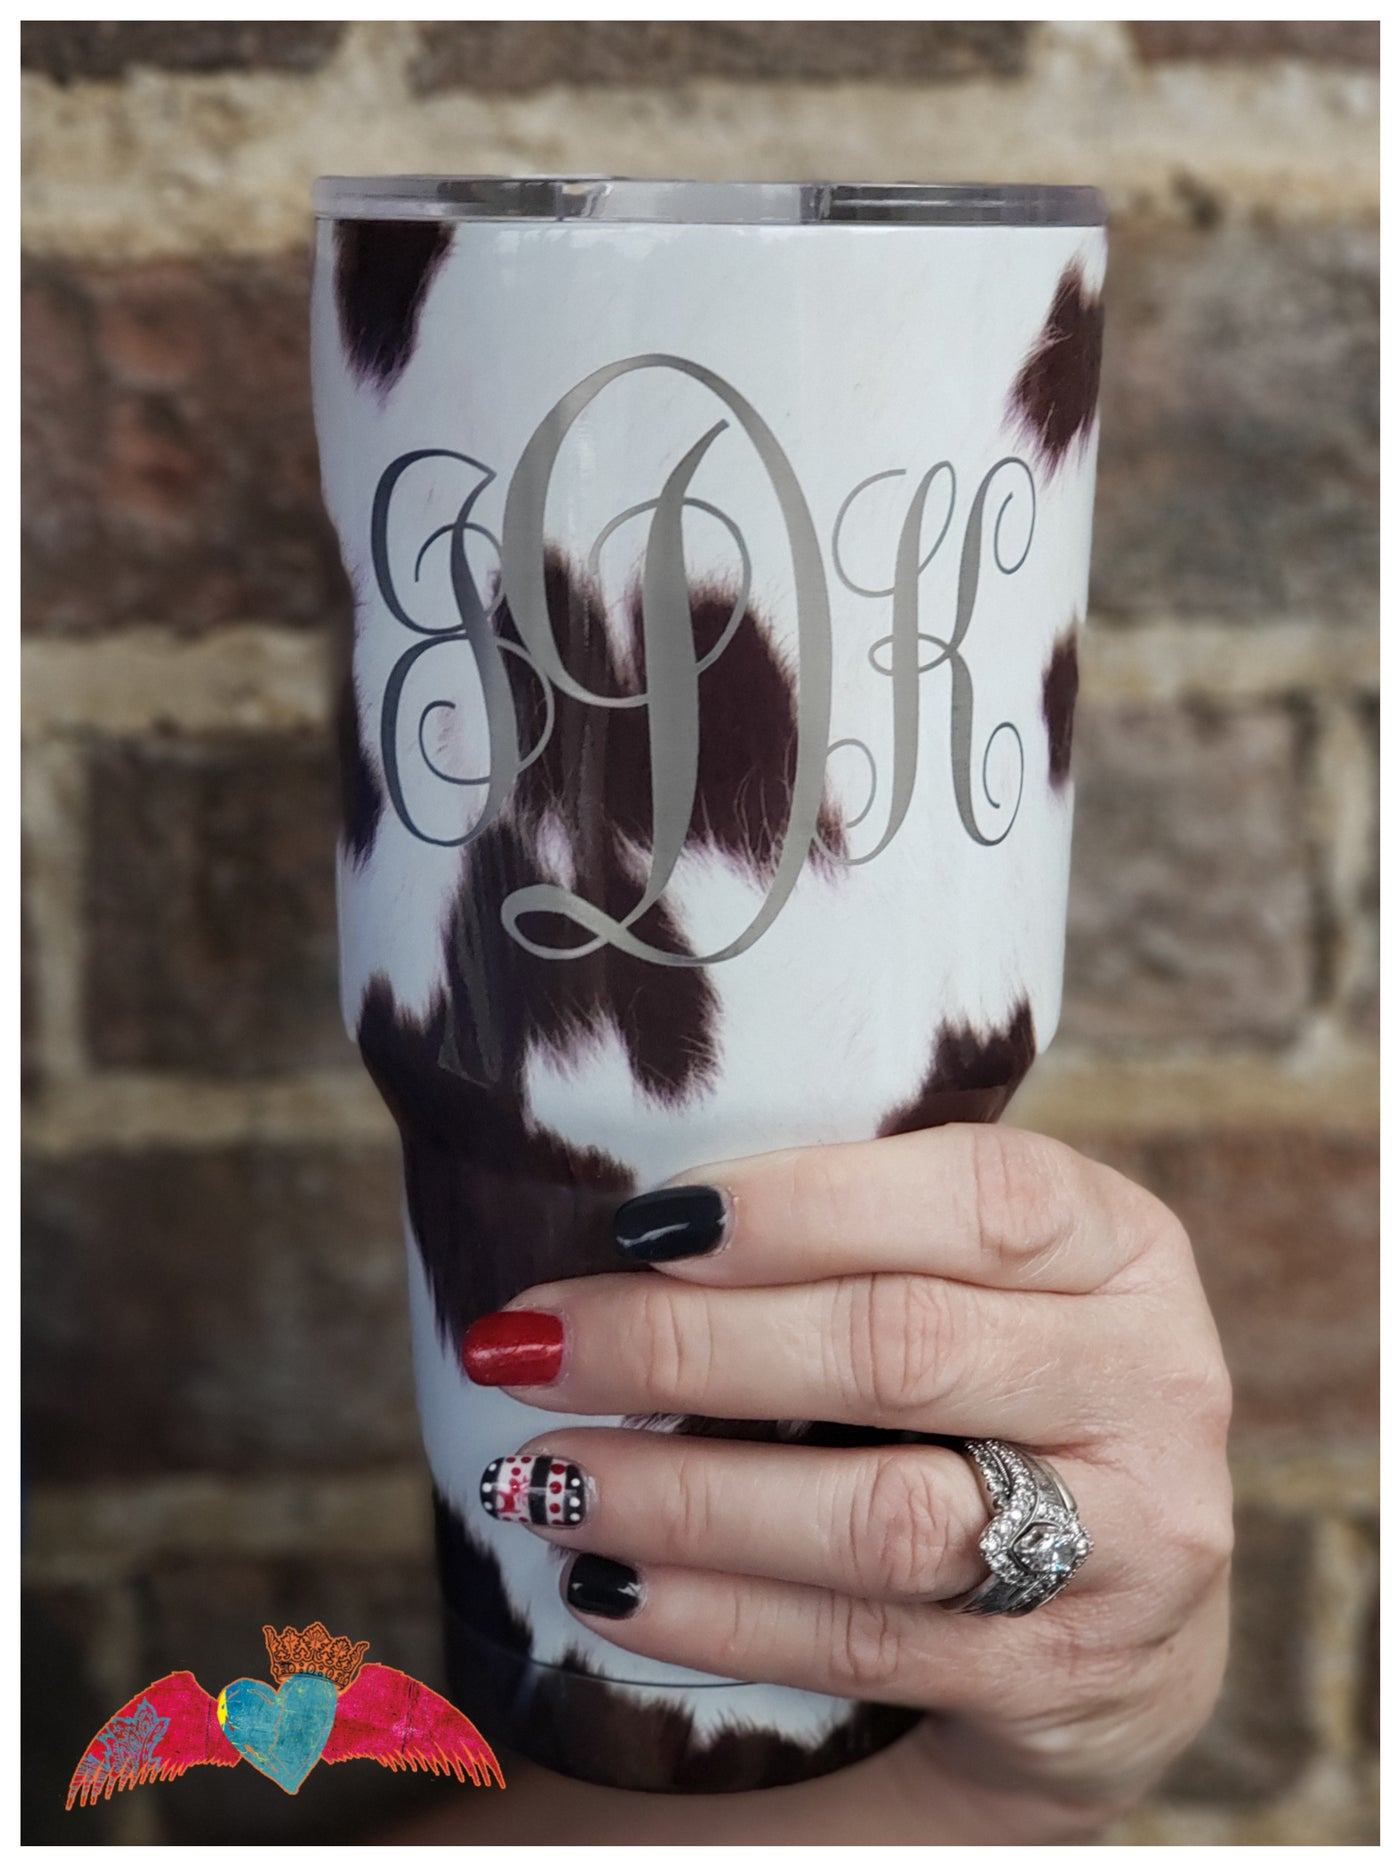 30 oz cow print tumbler with personalization